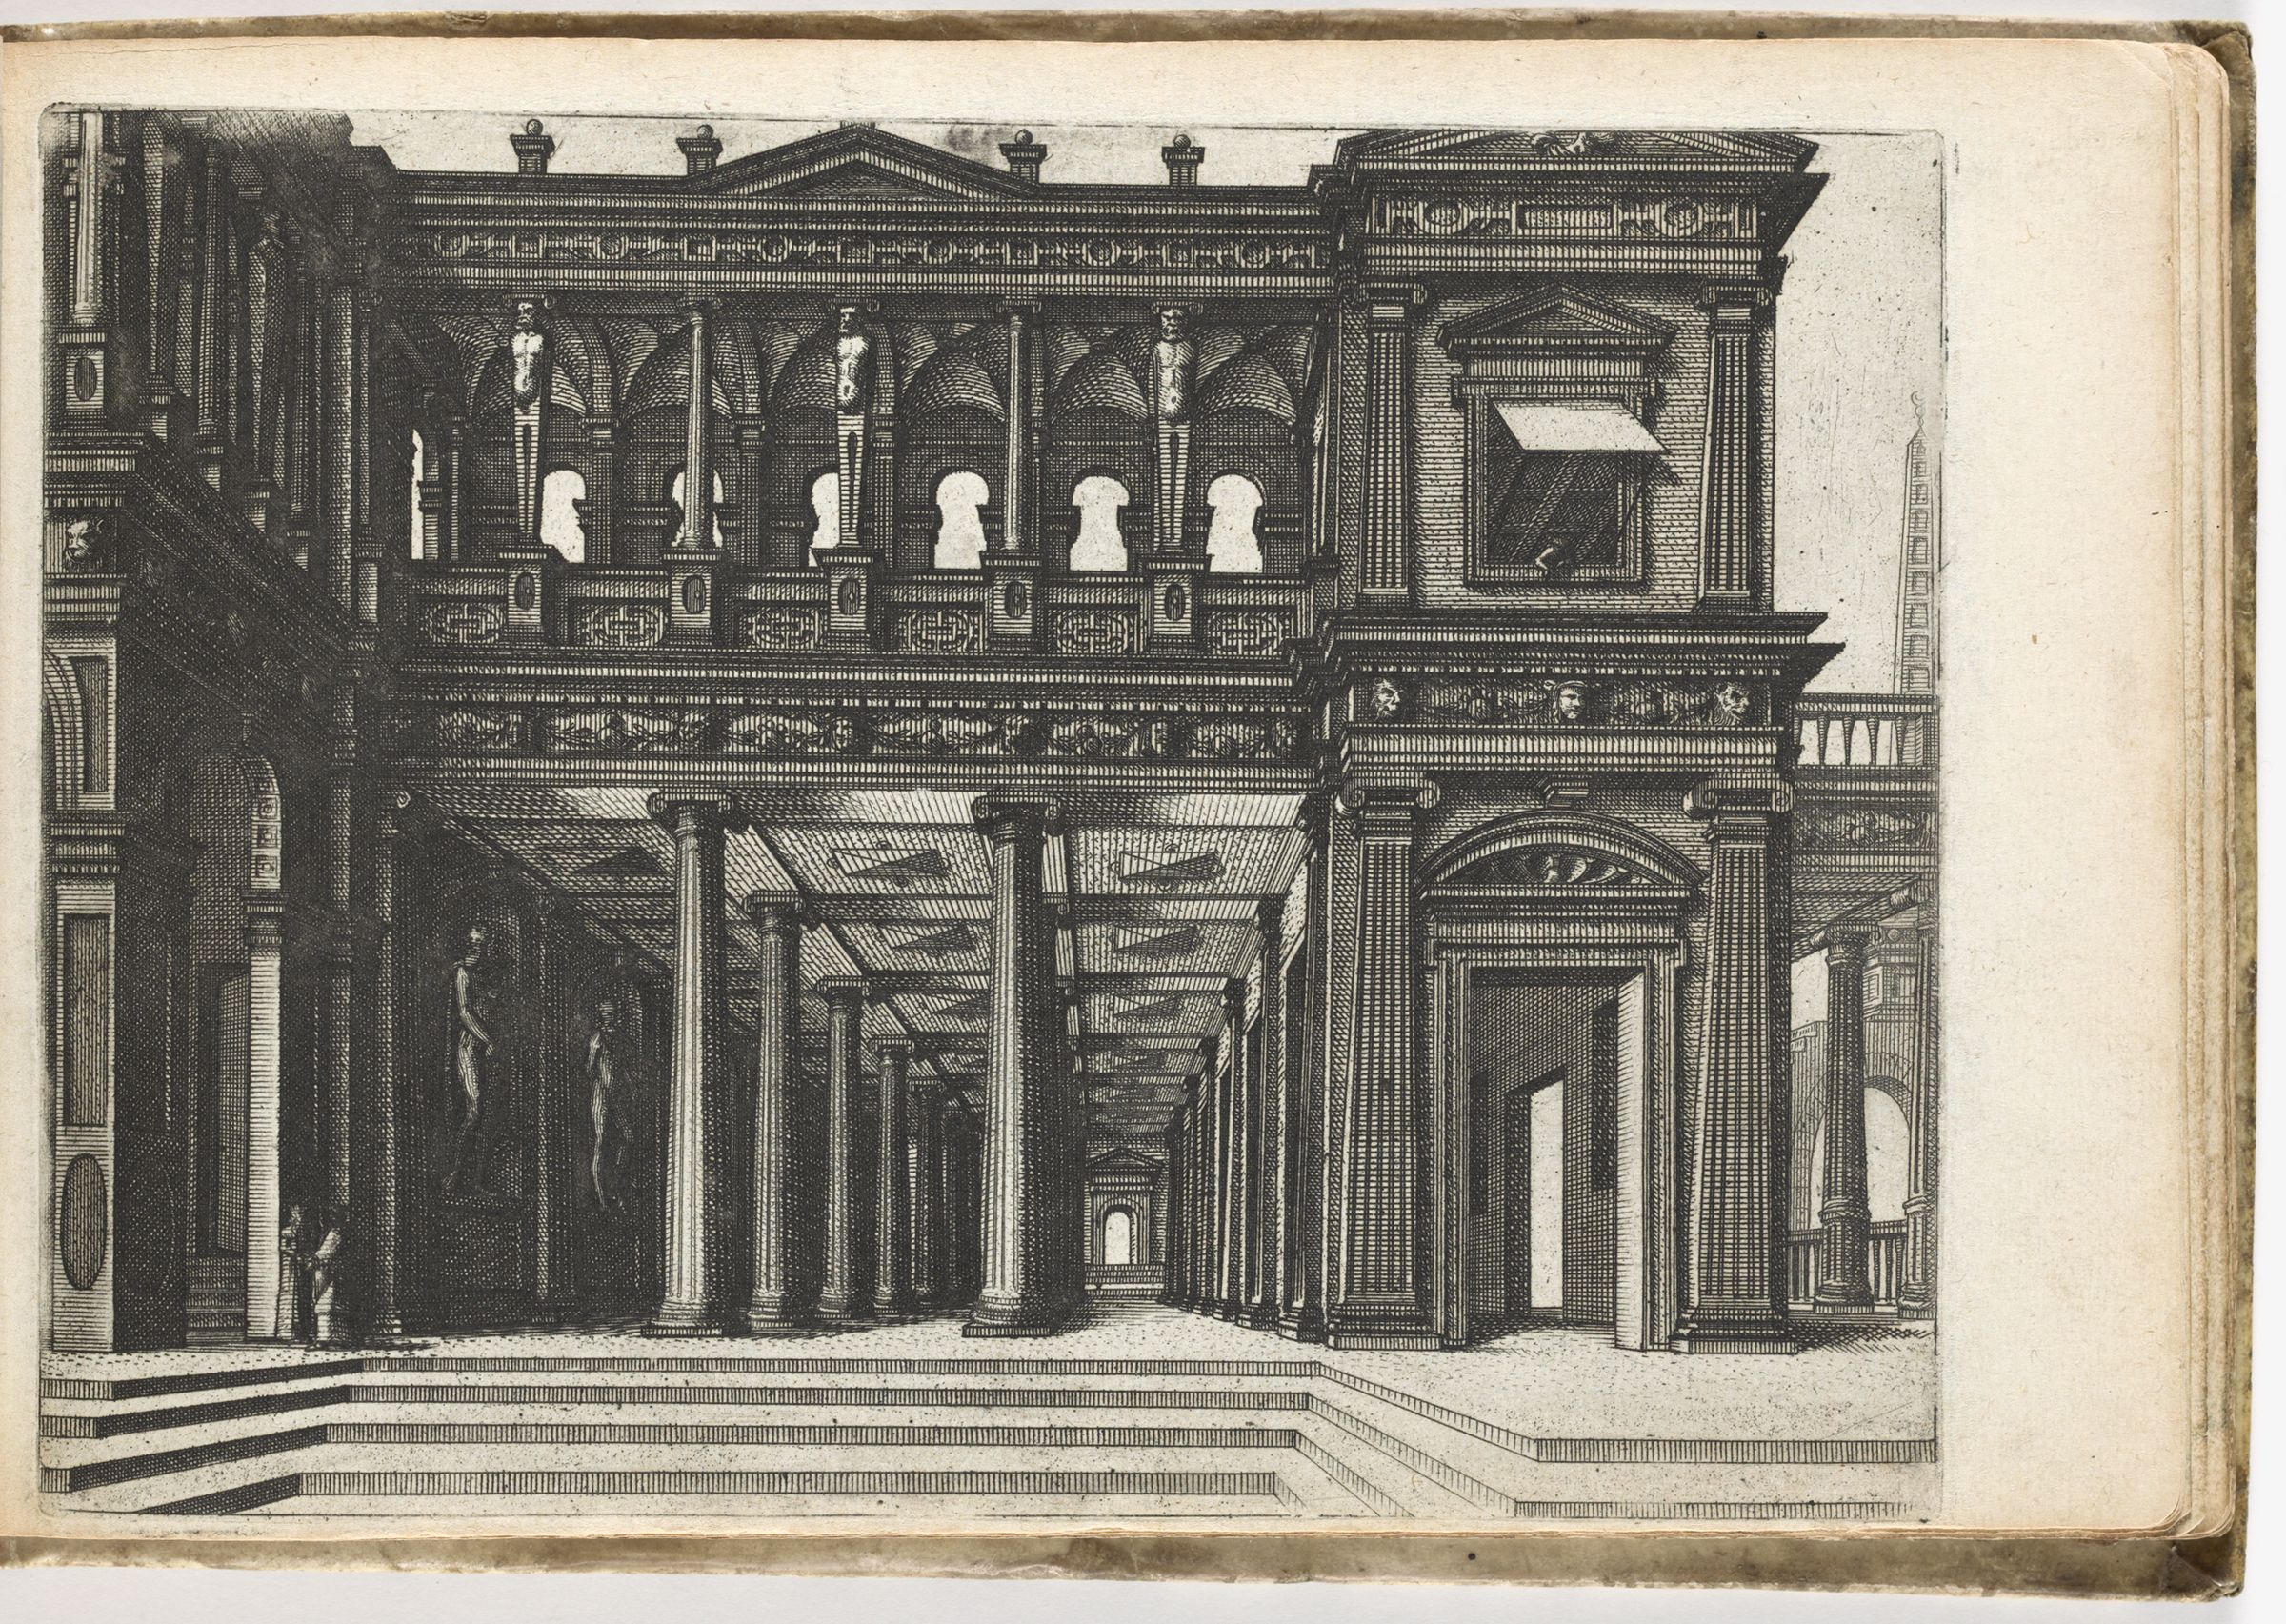 Palace With Open Hall On Groundfloor With Cancellated Columns Of The Ionic Order, On The First Floor A Colonnade